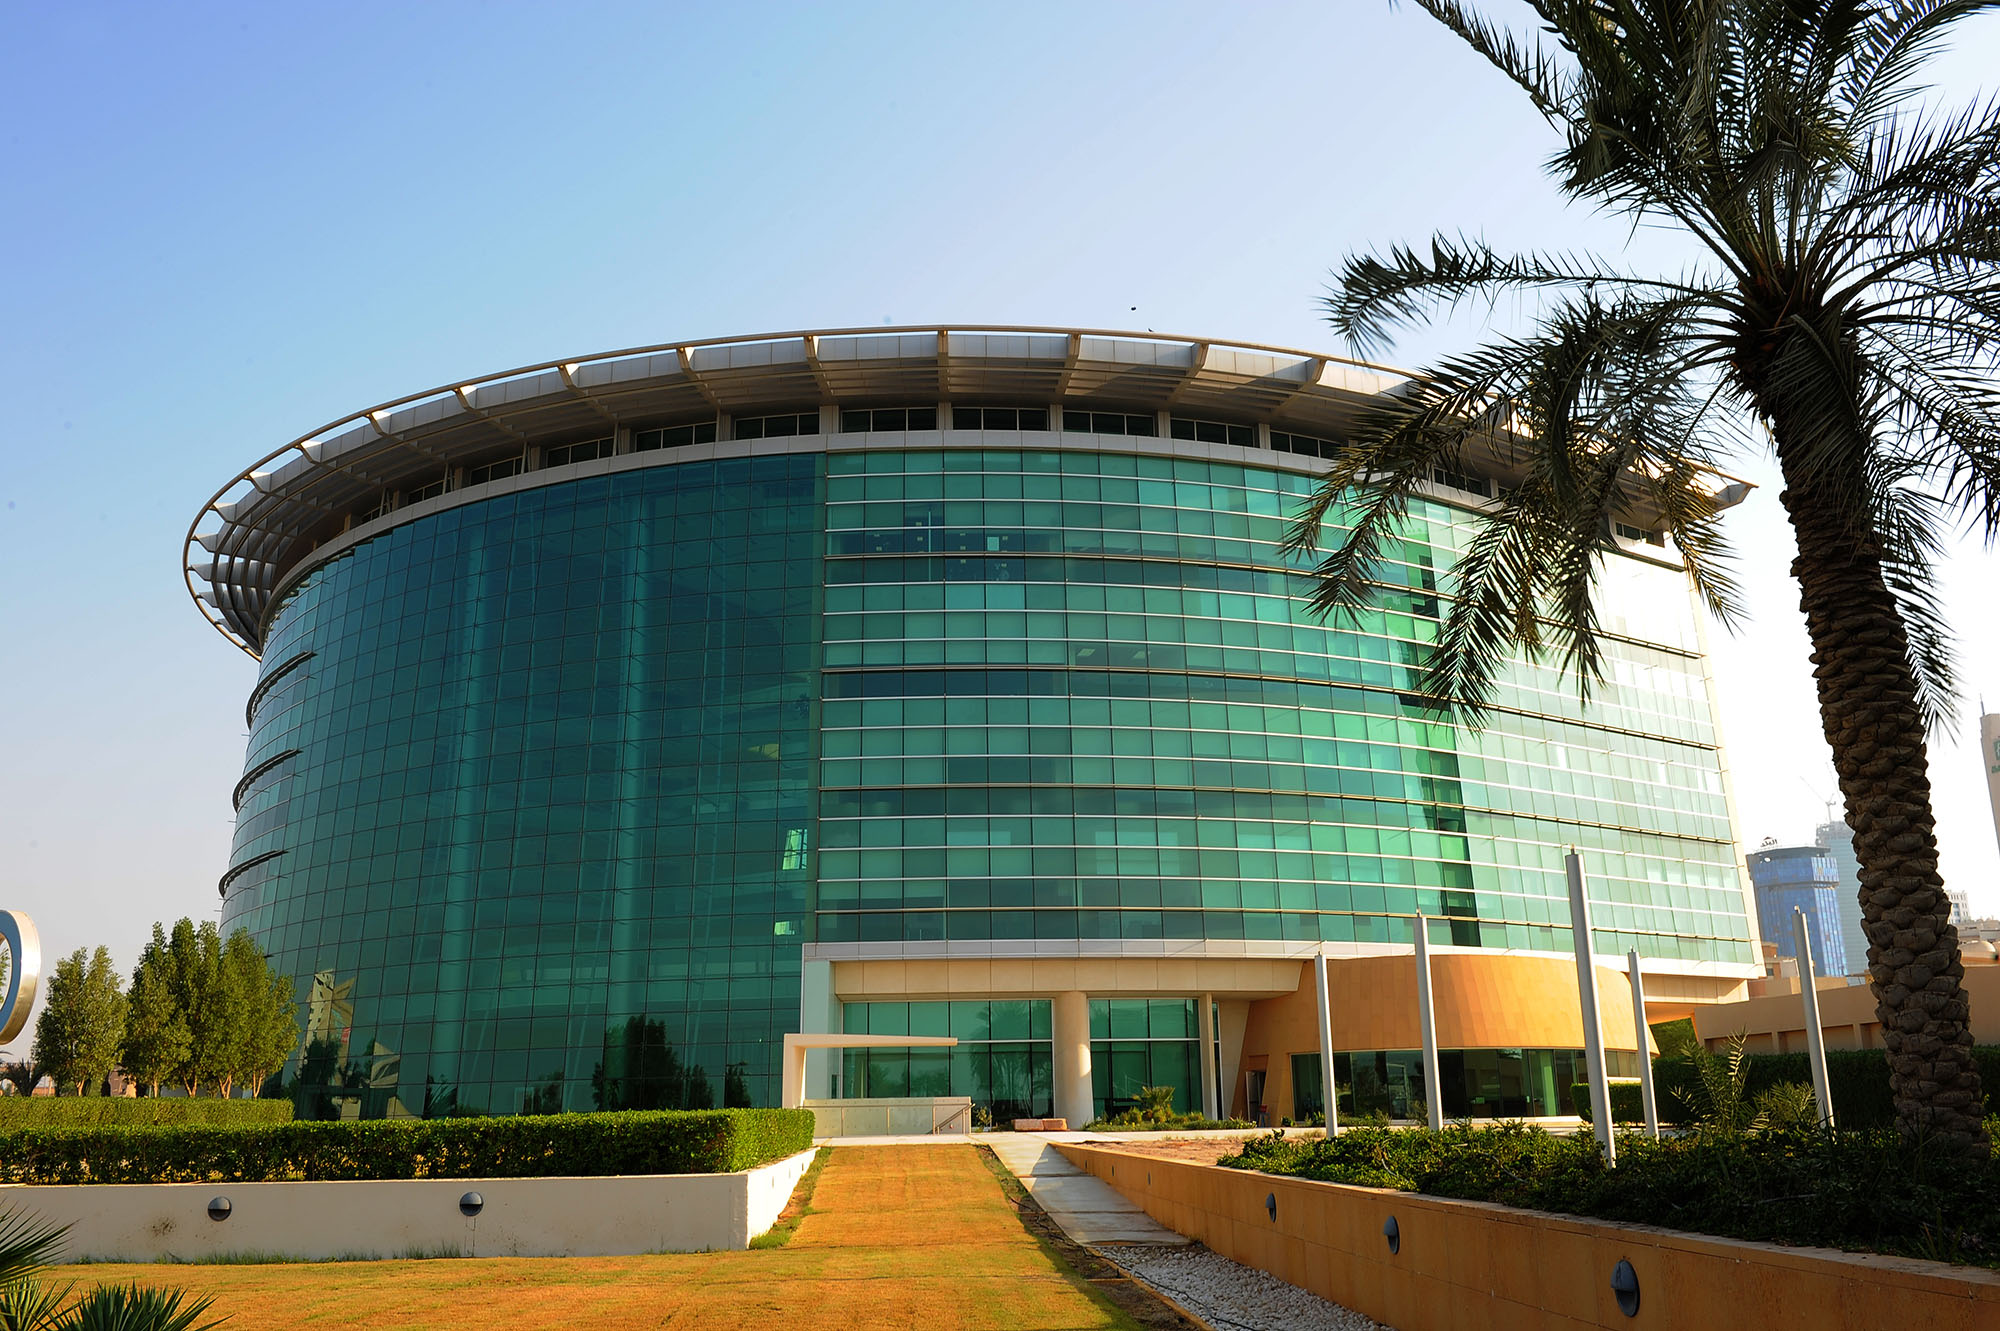 Dasman Center for Research and Treatment of Diabetes